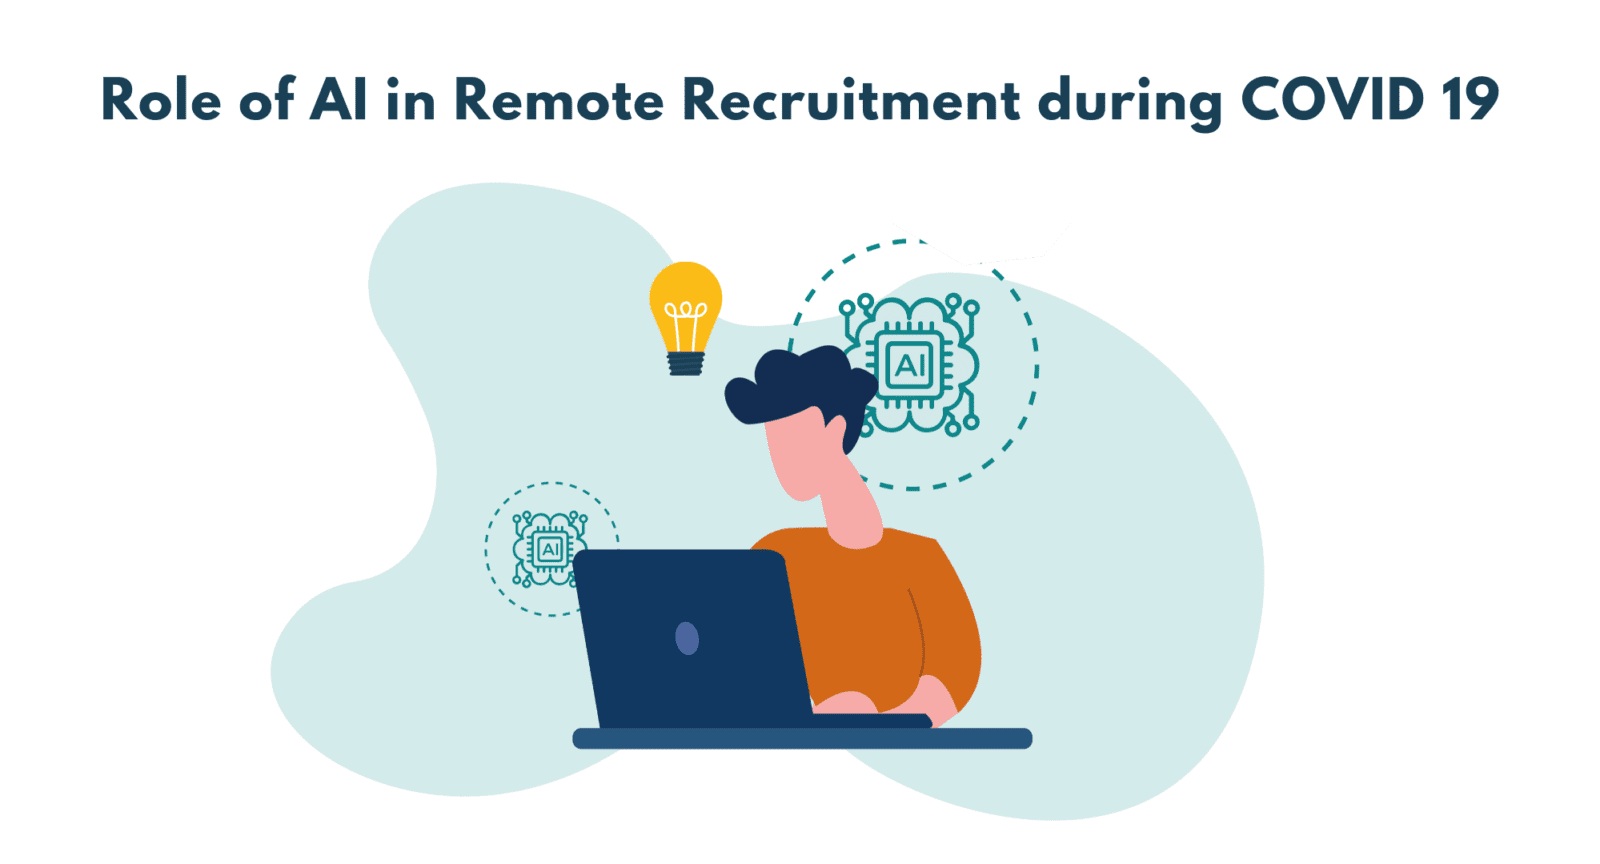 Role of AI in Remote Recruitment, Artificial Intelligence in Hiring, How can AI help in recruitment during COVID 19